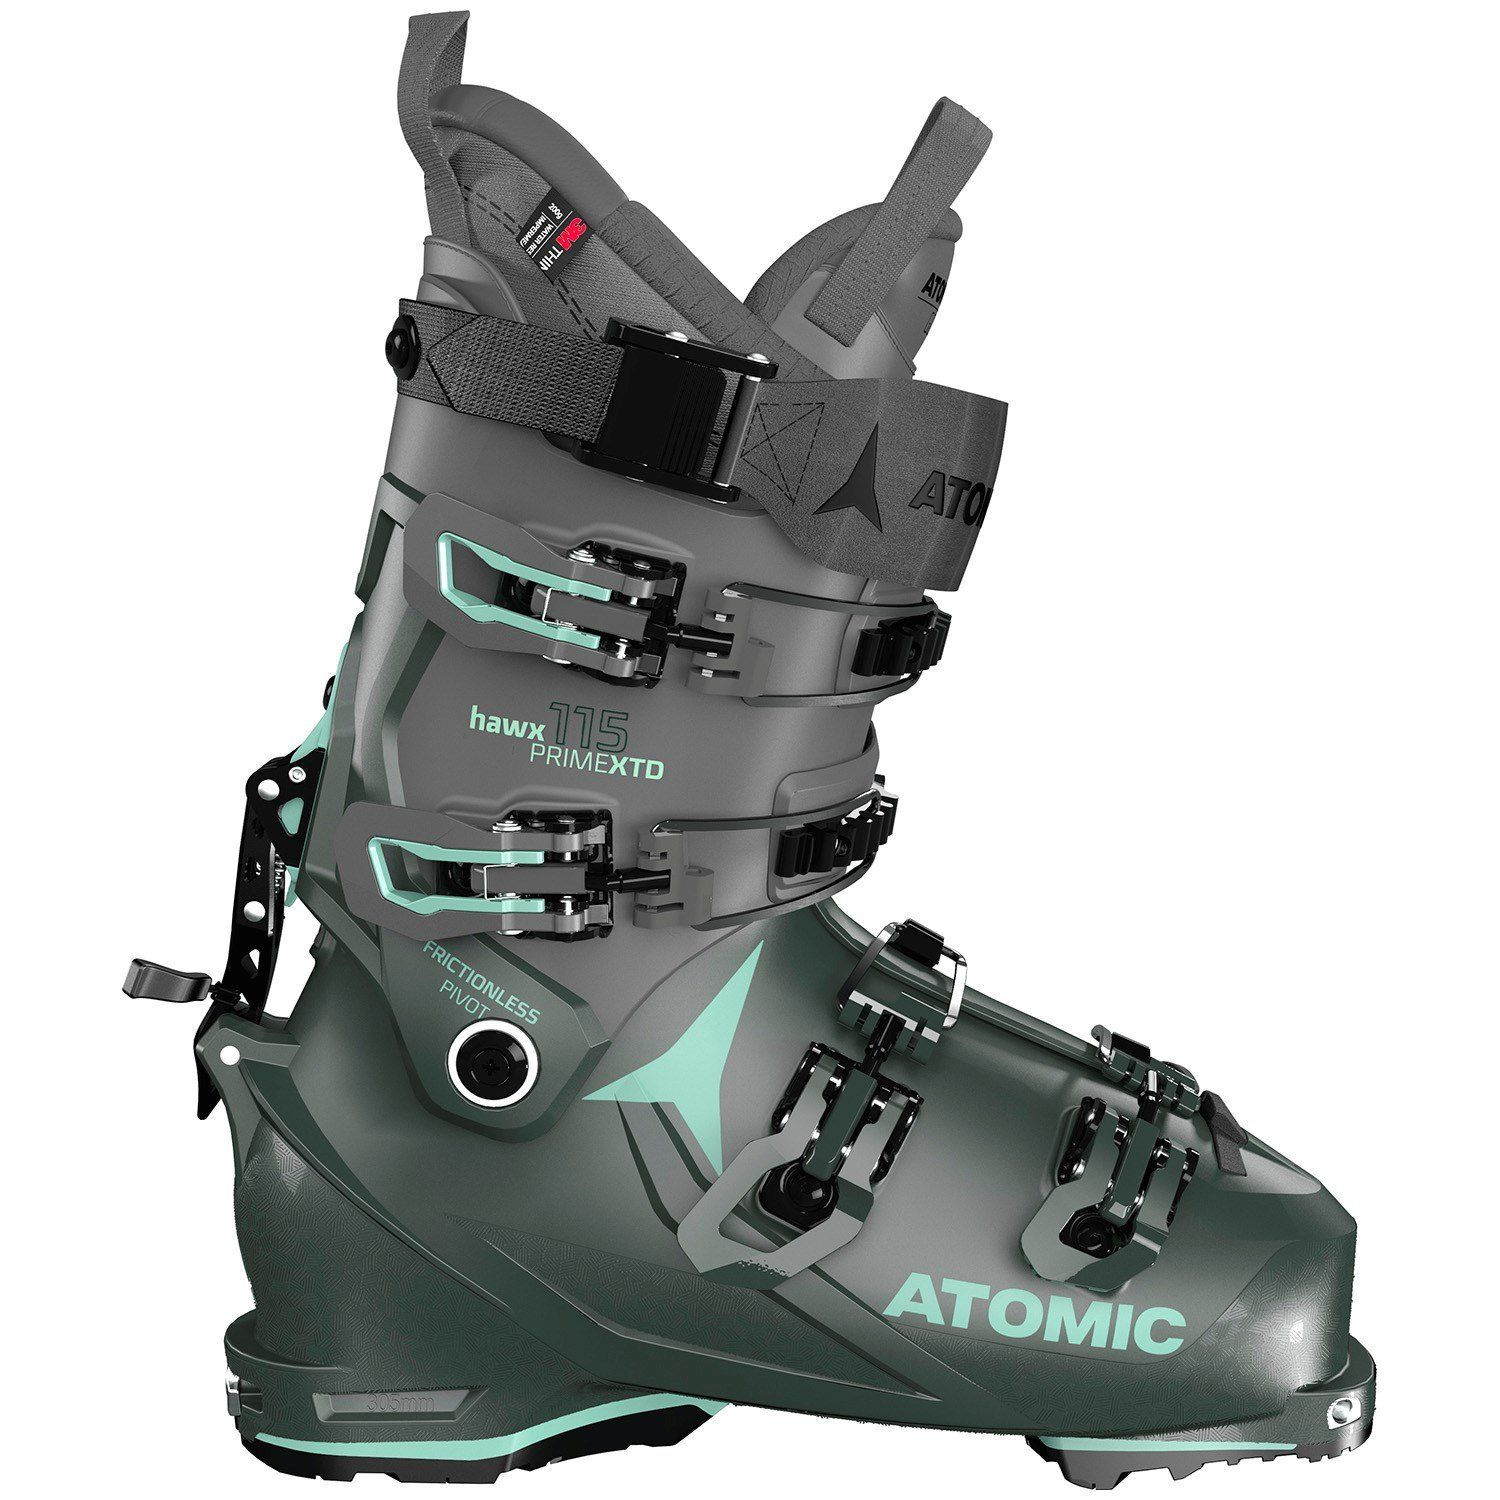 evo.com | Atomic Alpine Touring Ski Boots > The Atomic Hawx Prime XTD 115 W Alpine Touring Ski Boots are just what badass backcountry explorers with average to wide feet have been waiting for. Combining a burly 115 flex with a 100mm last and a relaxed fit over the instep, and an excellent walk mode, they deliver superb performance on both the uphill and the down. Throw in the all new heat-moldable Mimic liners and highly customizable shells, and you have the ultimate do-it-all boot with the perf